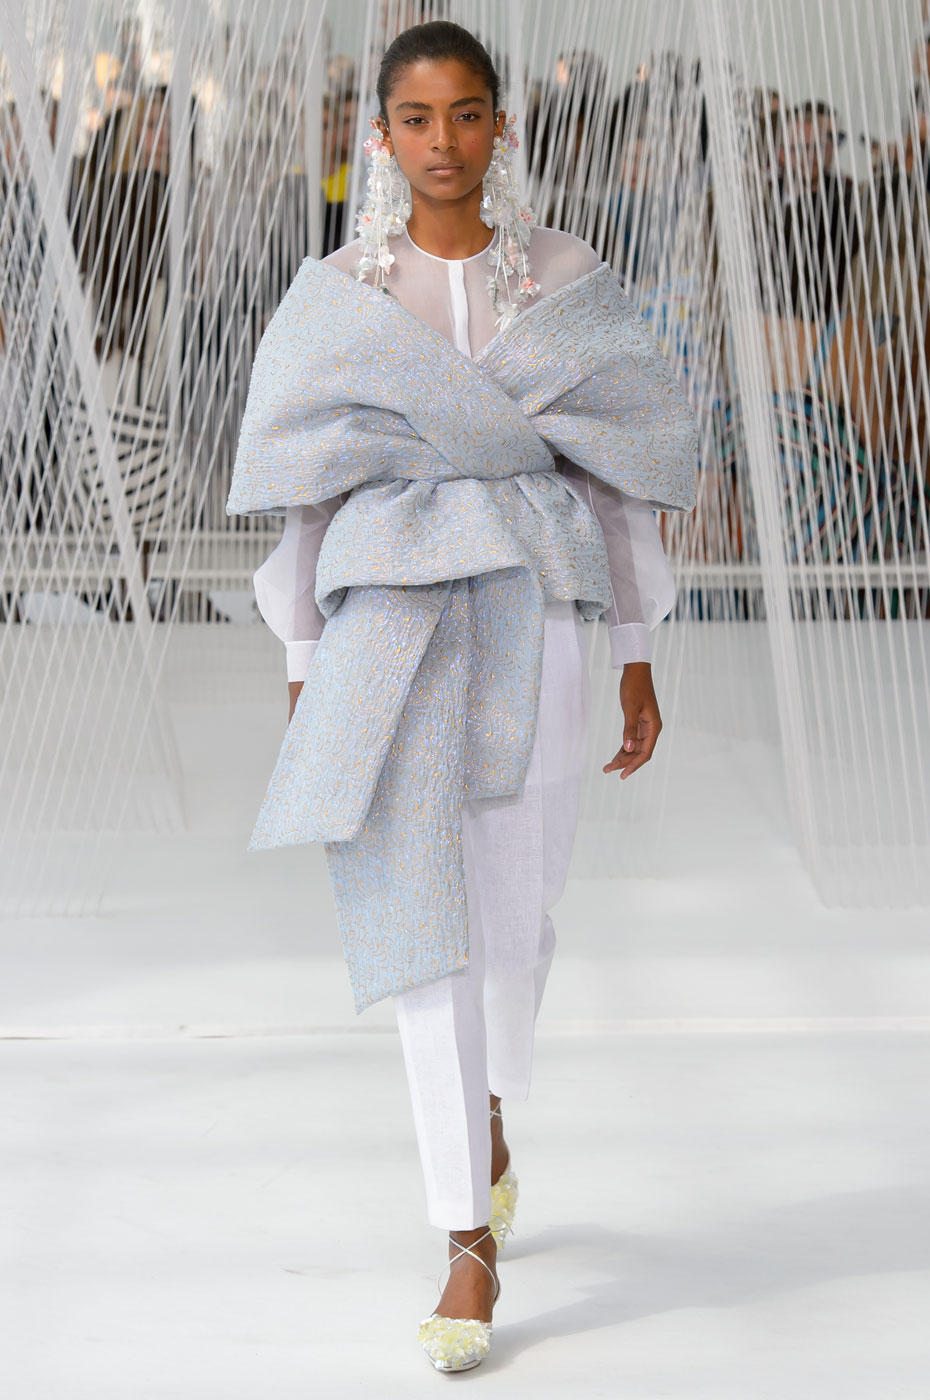 Delpozo Spring 2017 Ready-to-Wear Collection - Project